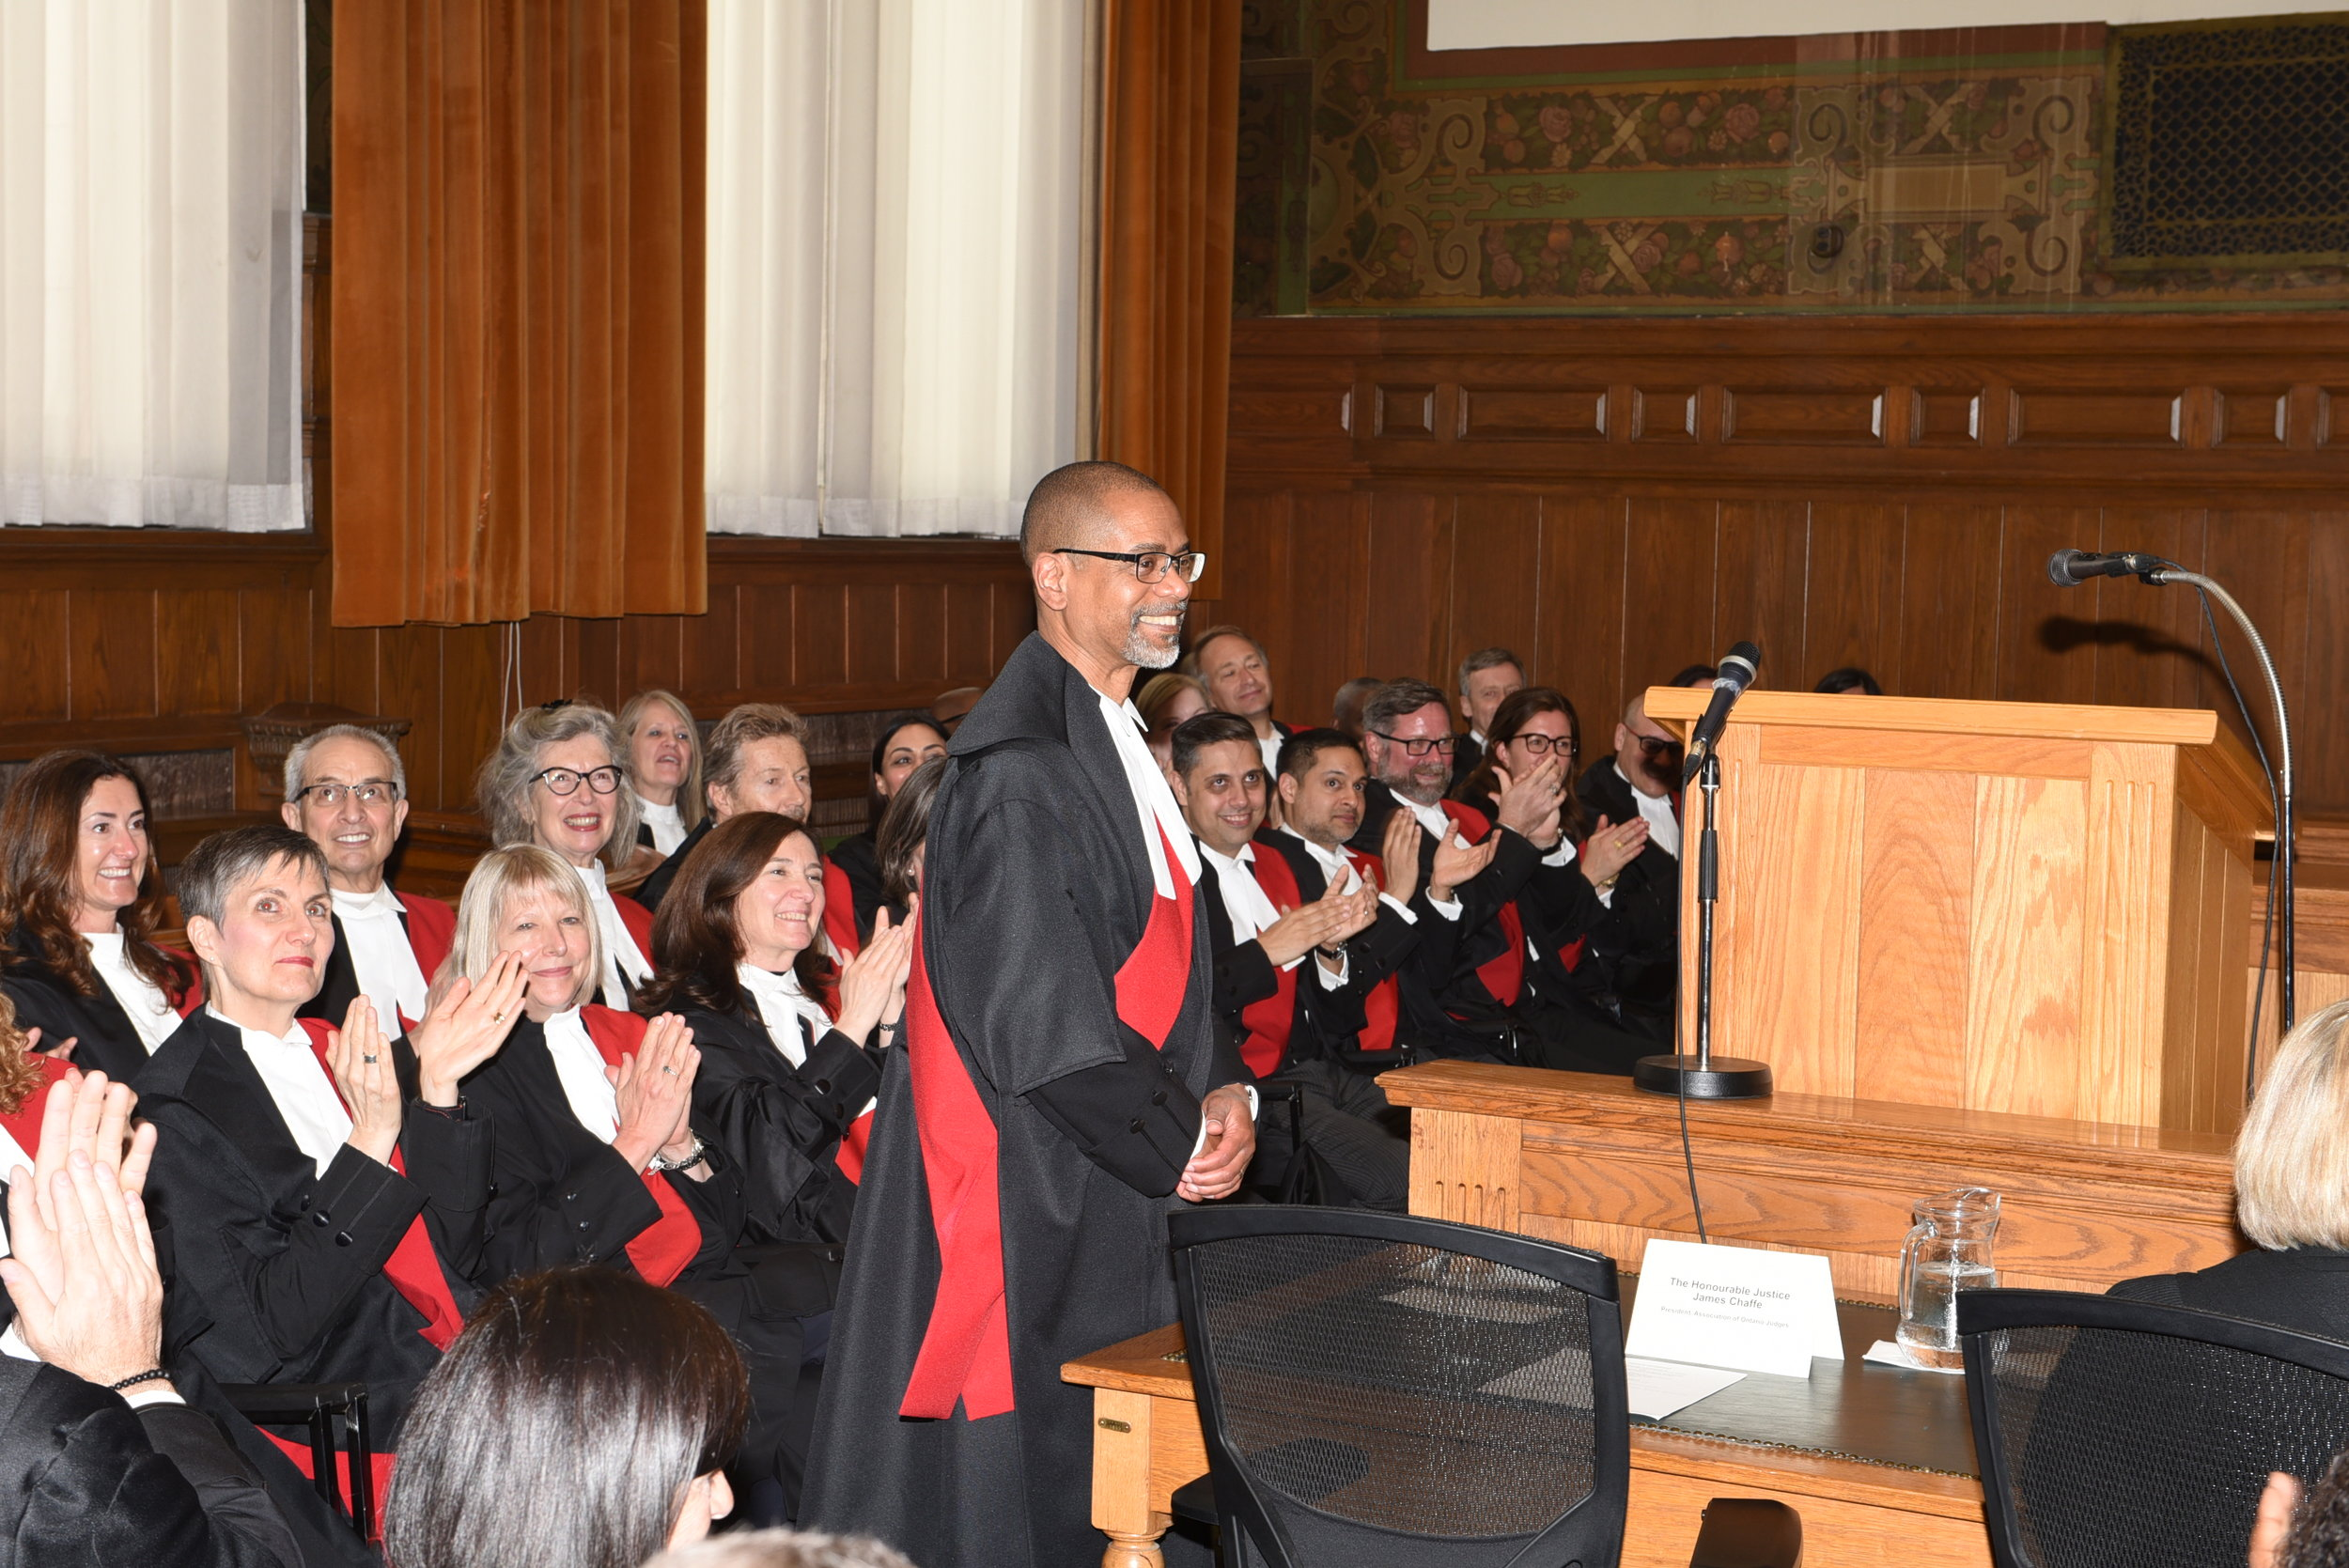 Justice David Maylor at his swearing-in ceremony